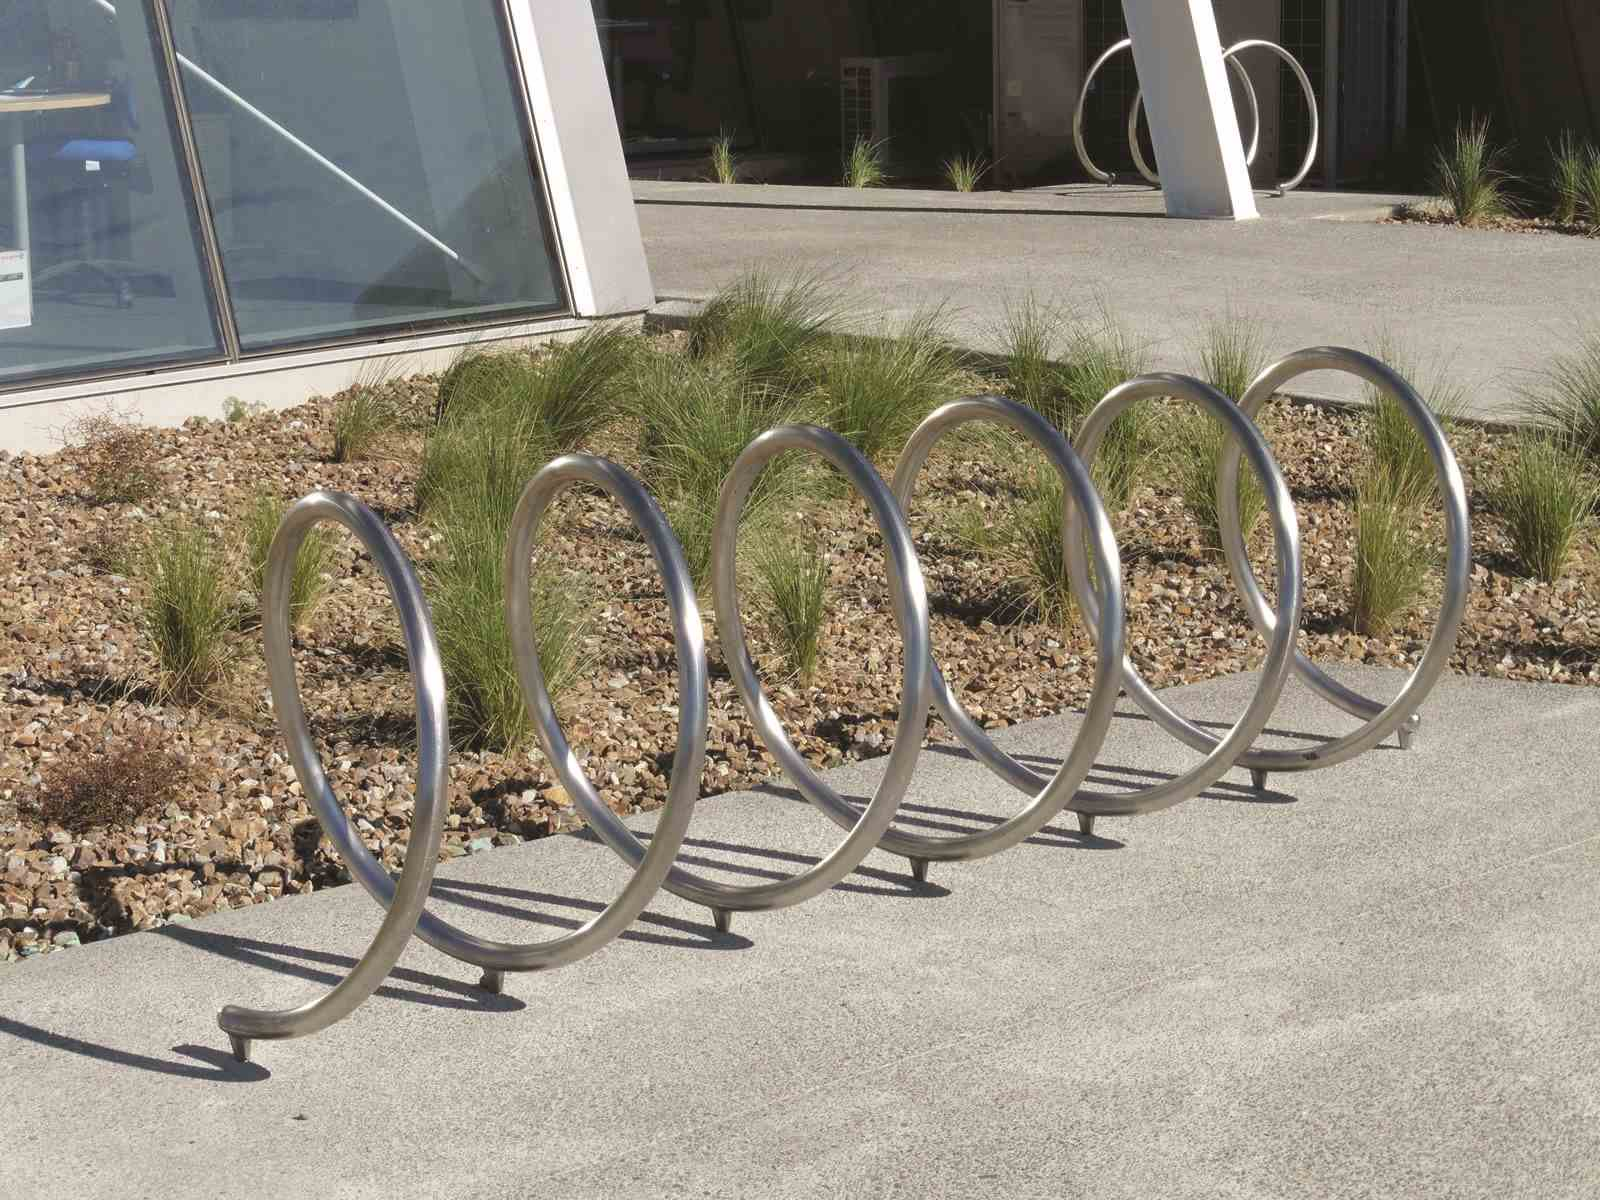 Example cycle stand